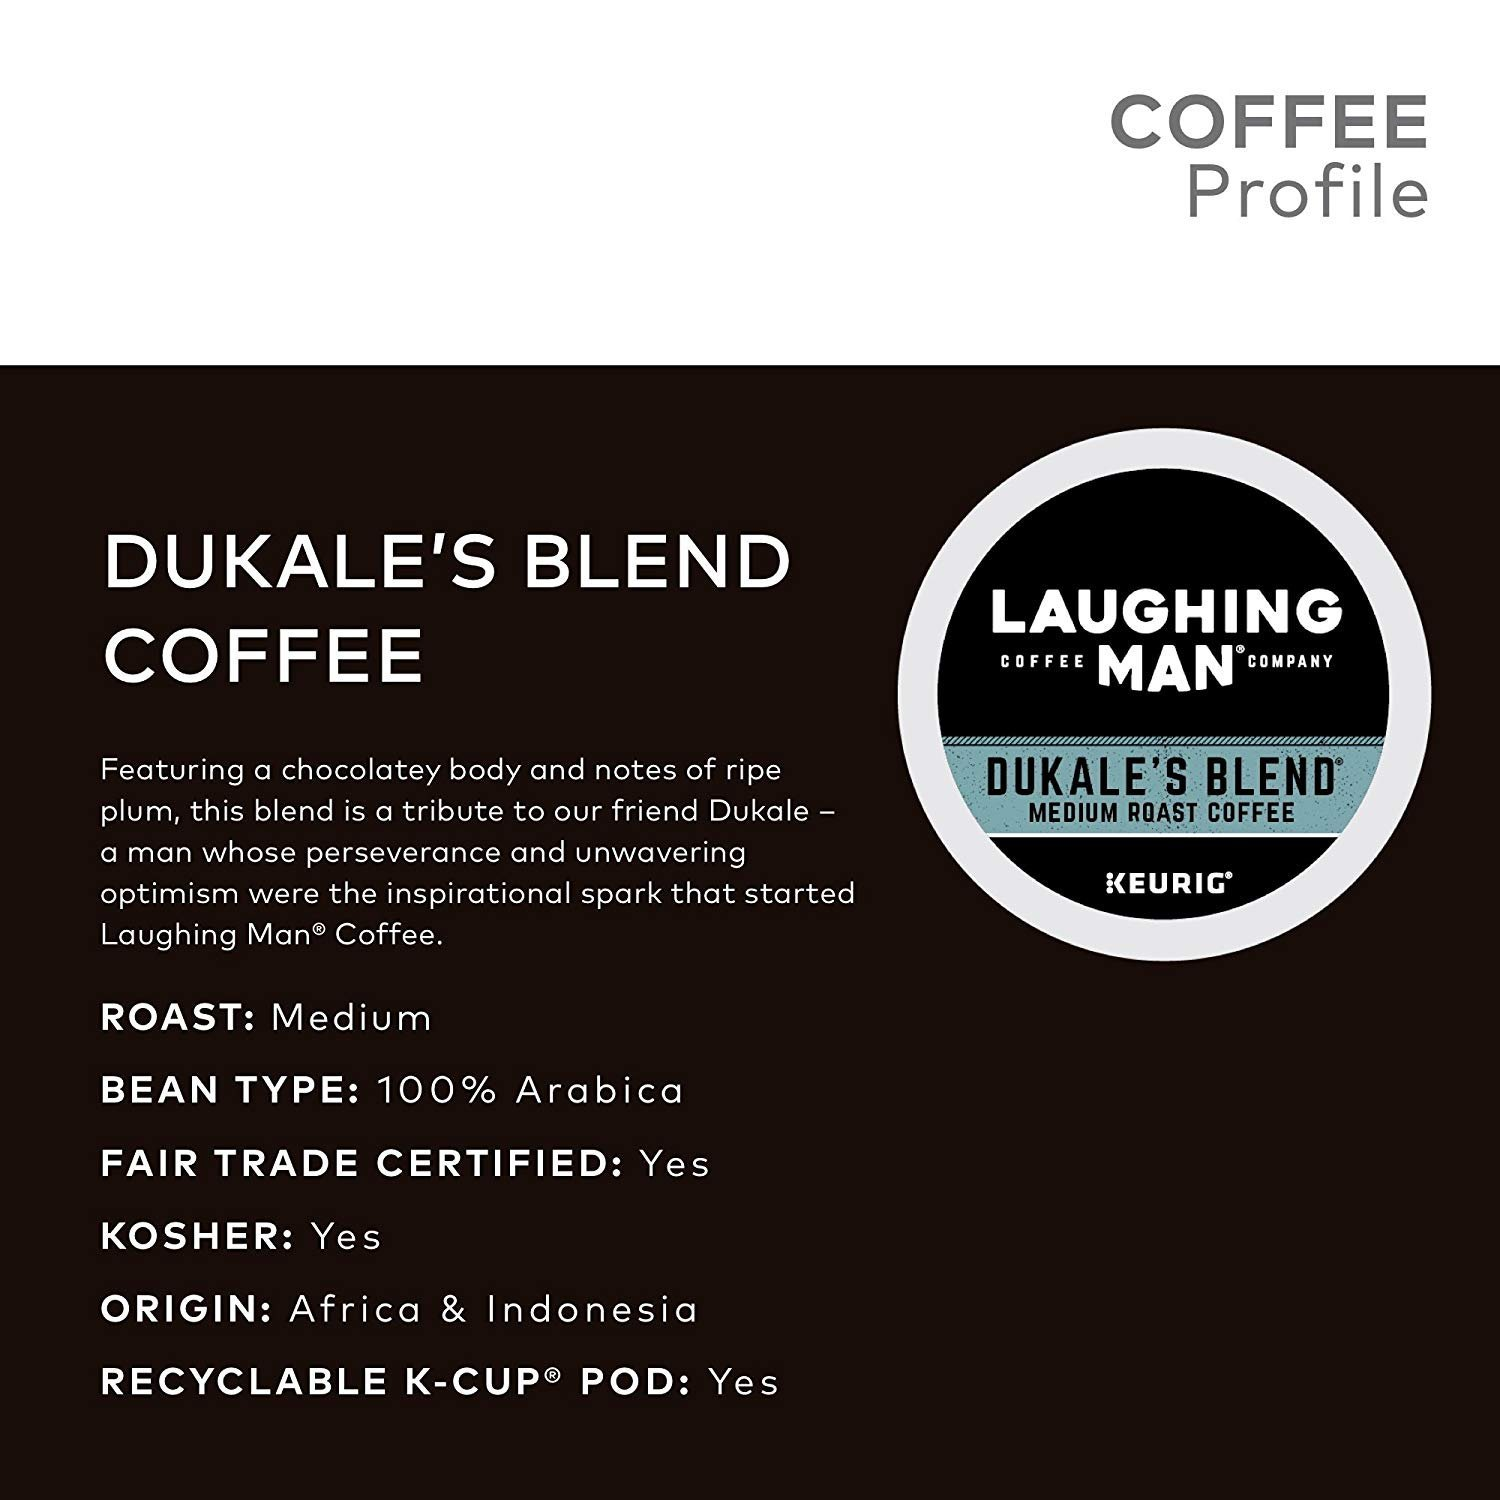 Laughing Man Dukale's Blend Coffee Keurig K-Cups, 96 Count by Laughing Man (Image #5)